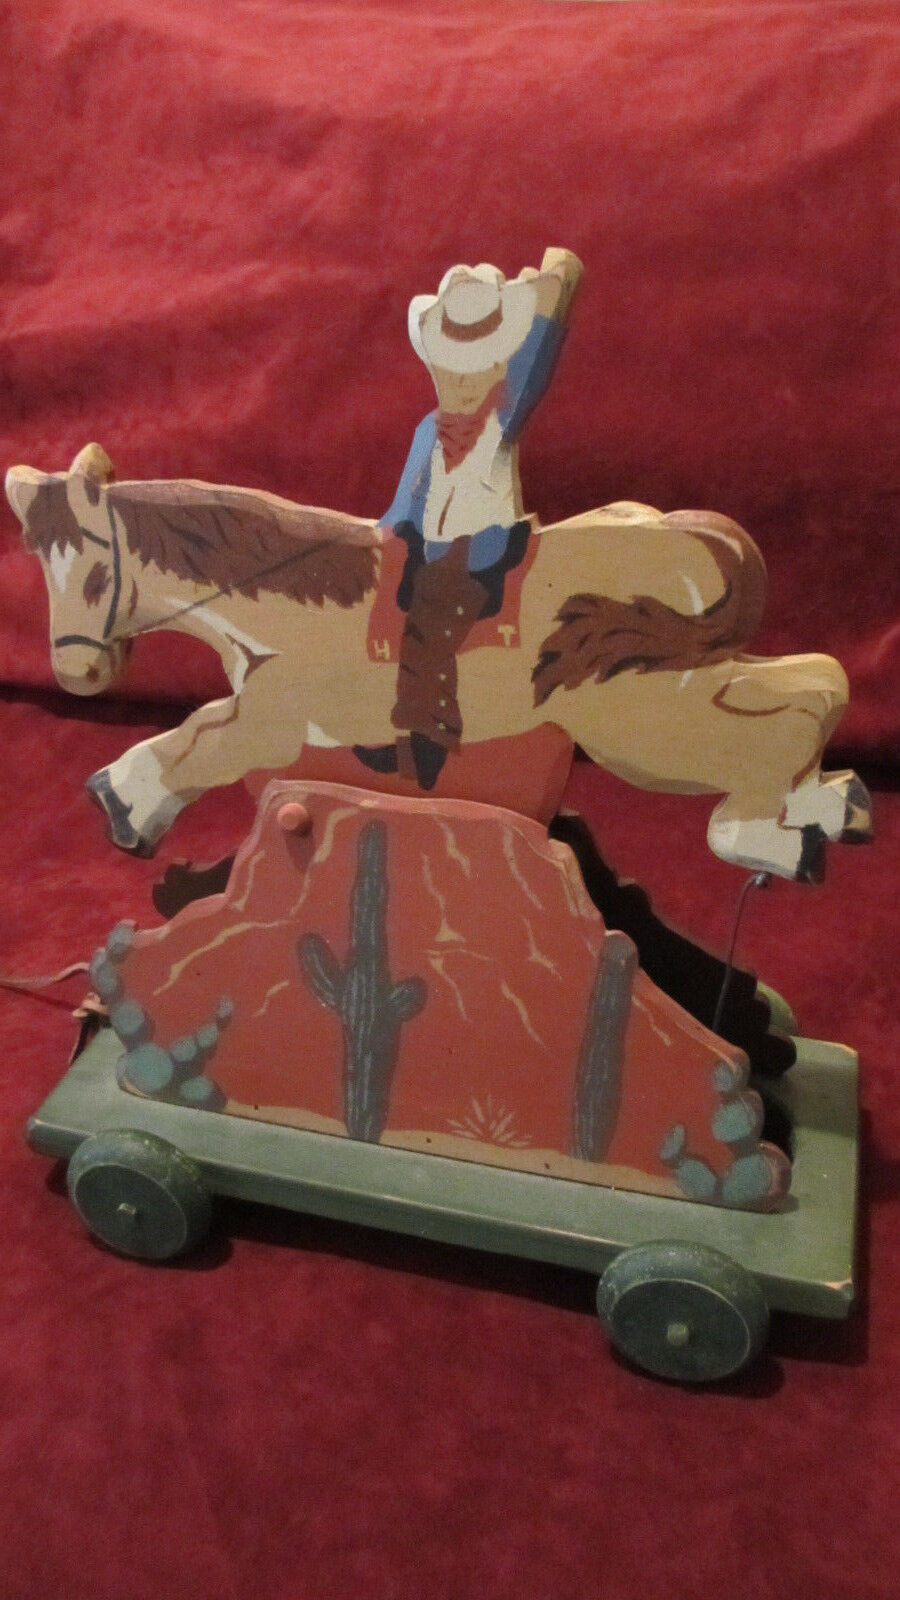 Heritage Collectible's Western Cowboy Musical Pull-ToyPlays Home on the Range